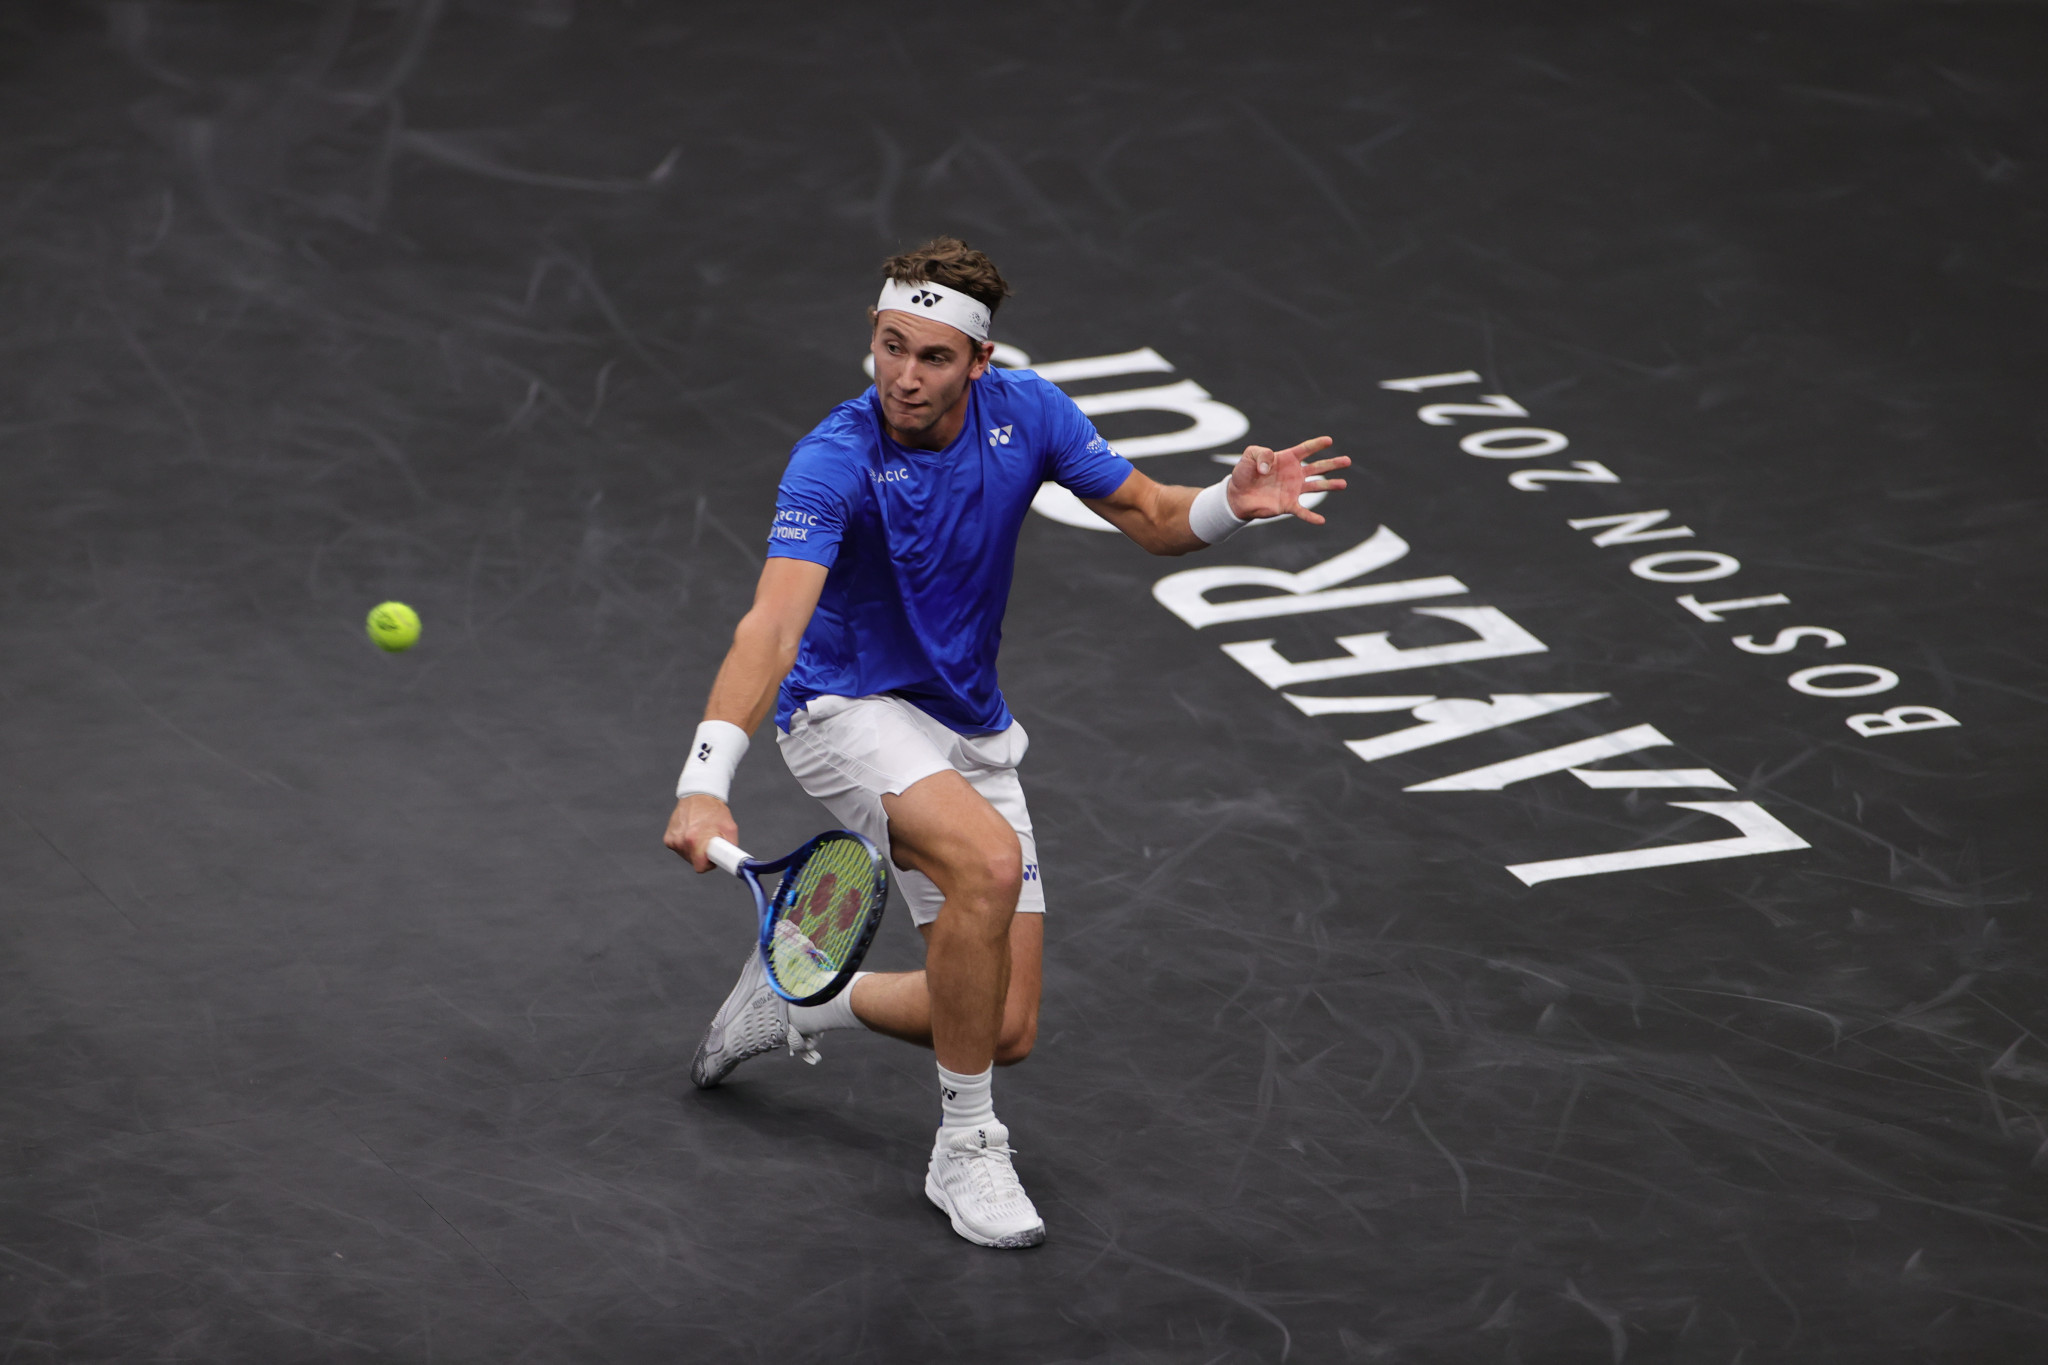 Europe off to blistering start at Laver Cup as Berrettini, Ruud and Rublev all win singles ties